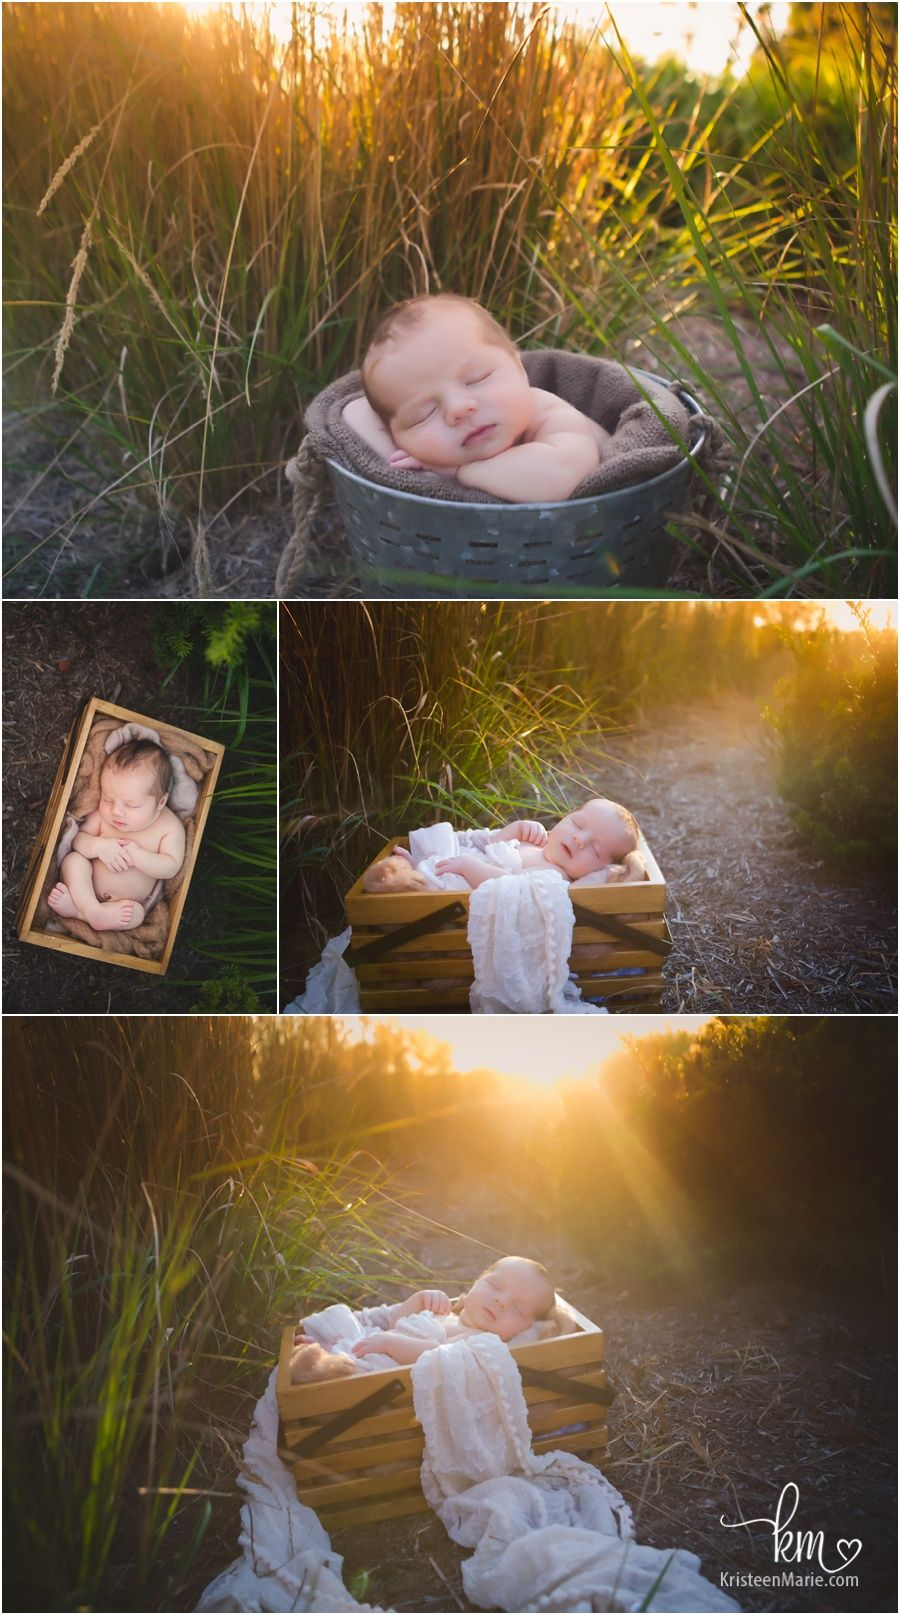 Outdoor newborn photography at sunset baby in a basket outside